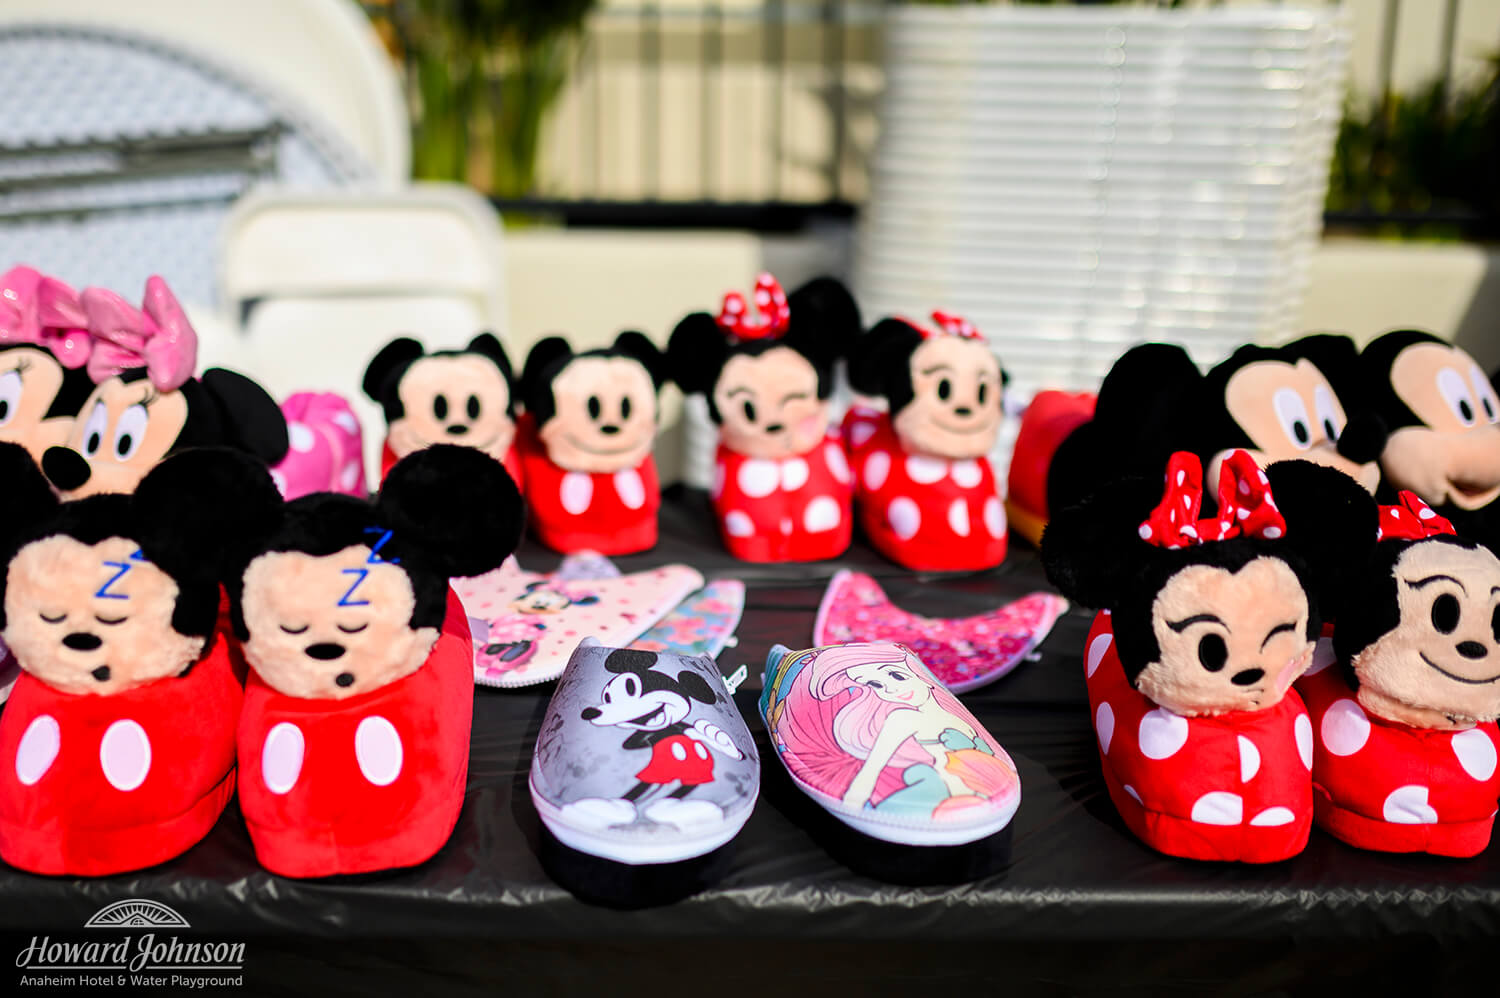 Minnie and Mickey Mouse slippers and shoes are displayed on a table